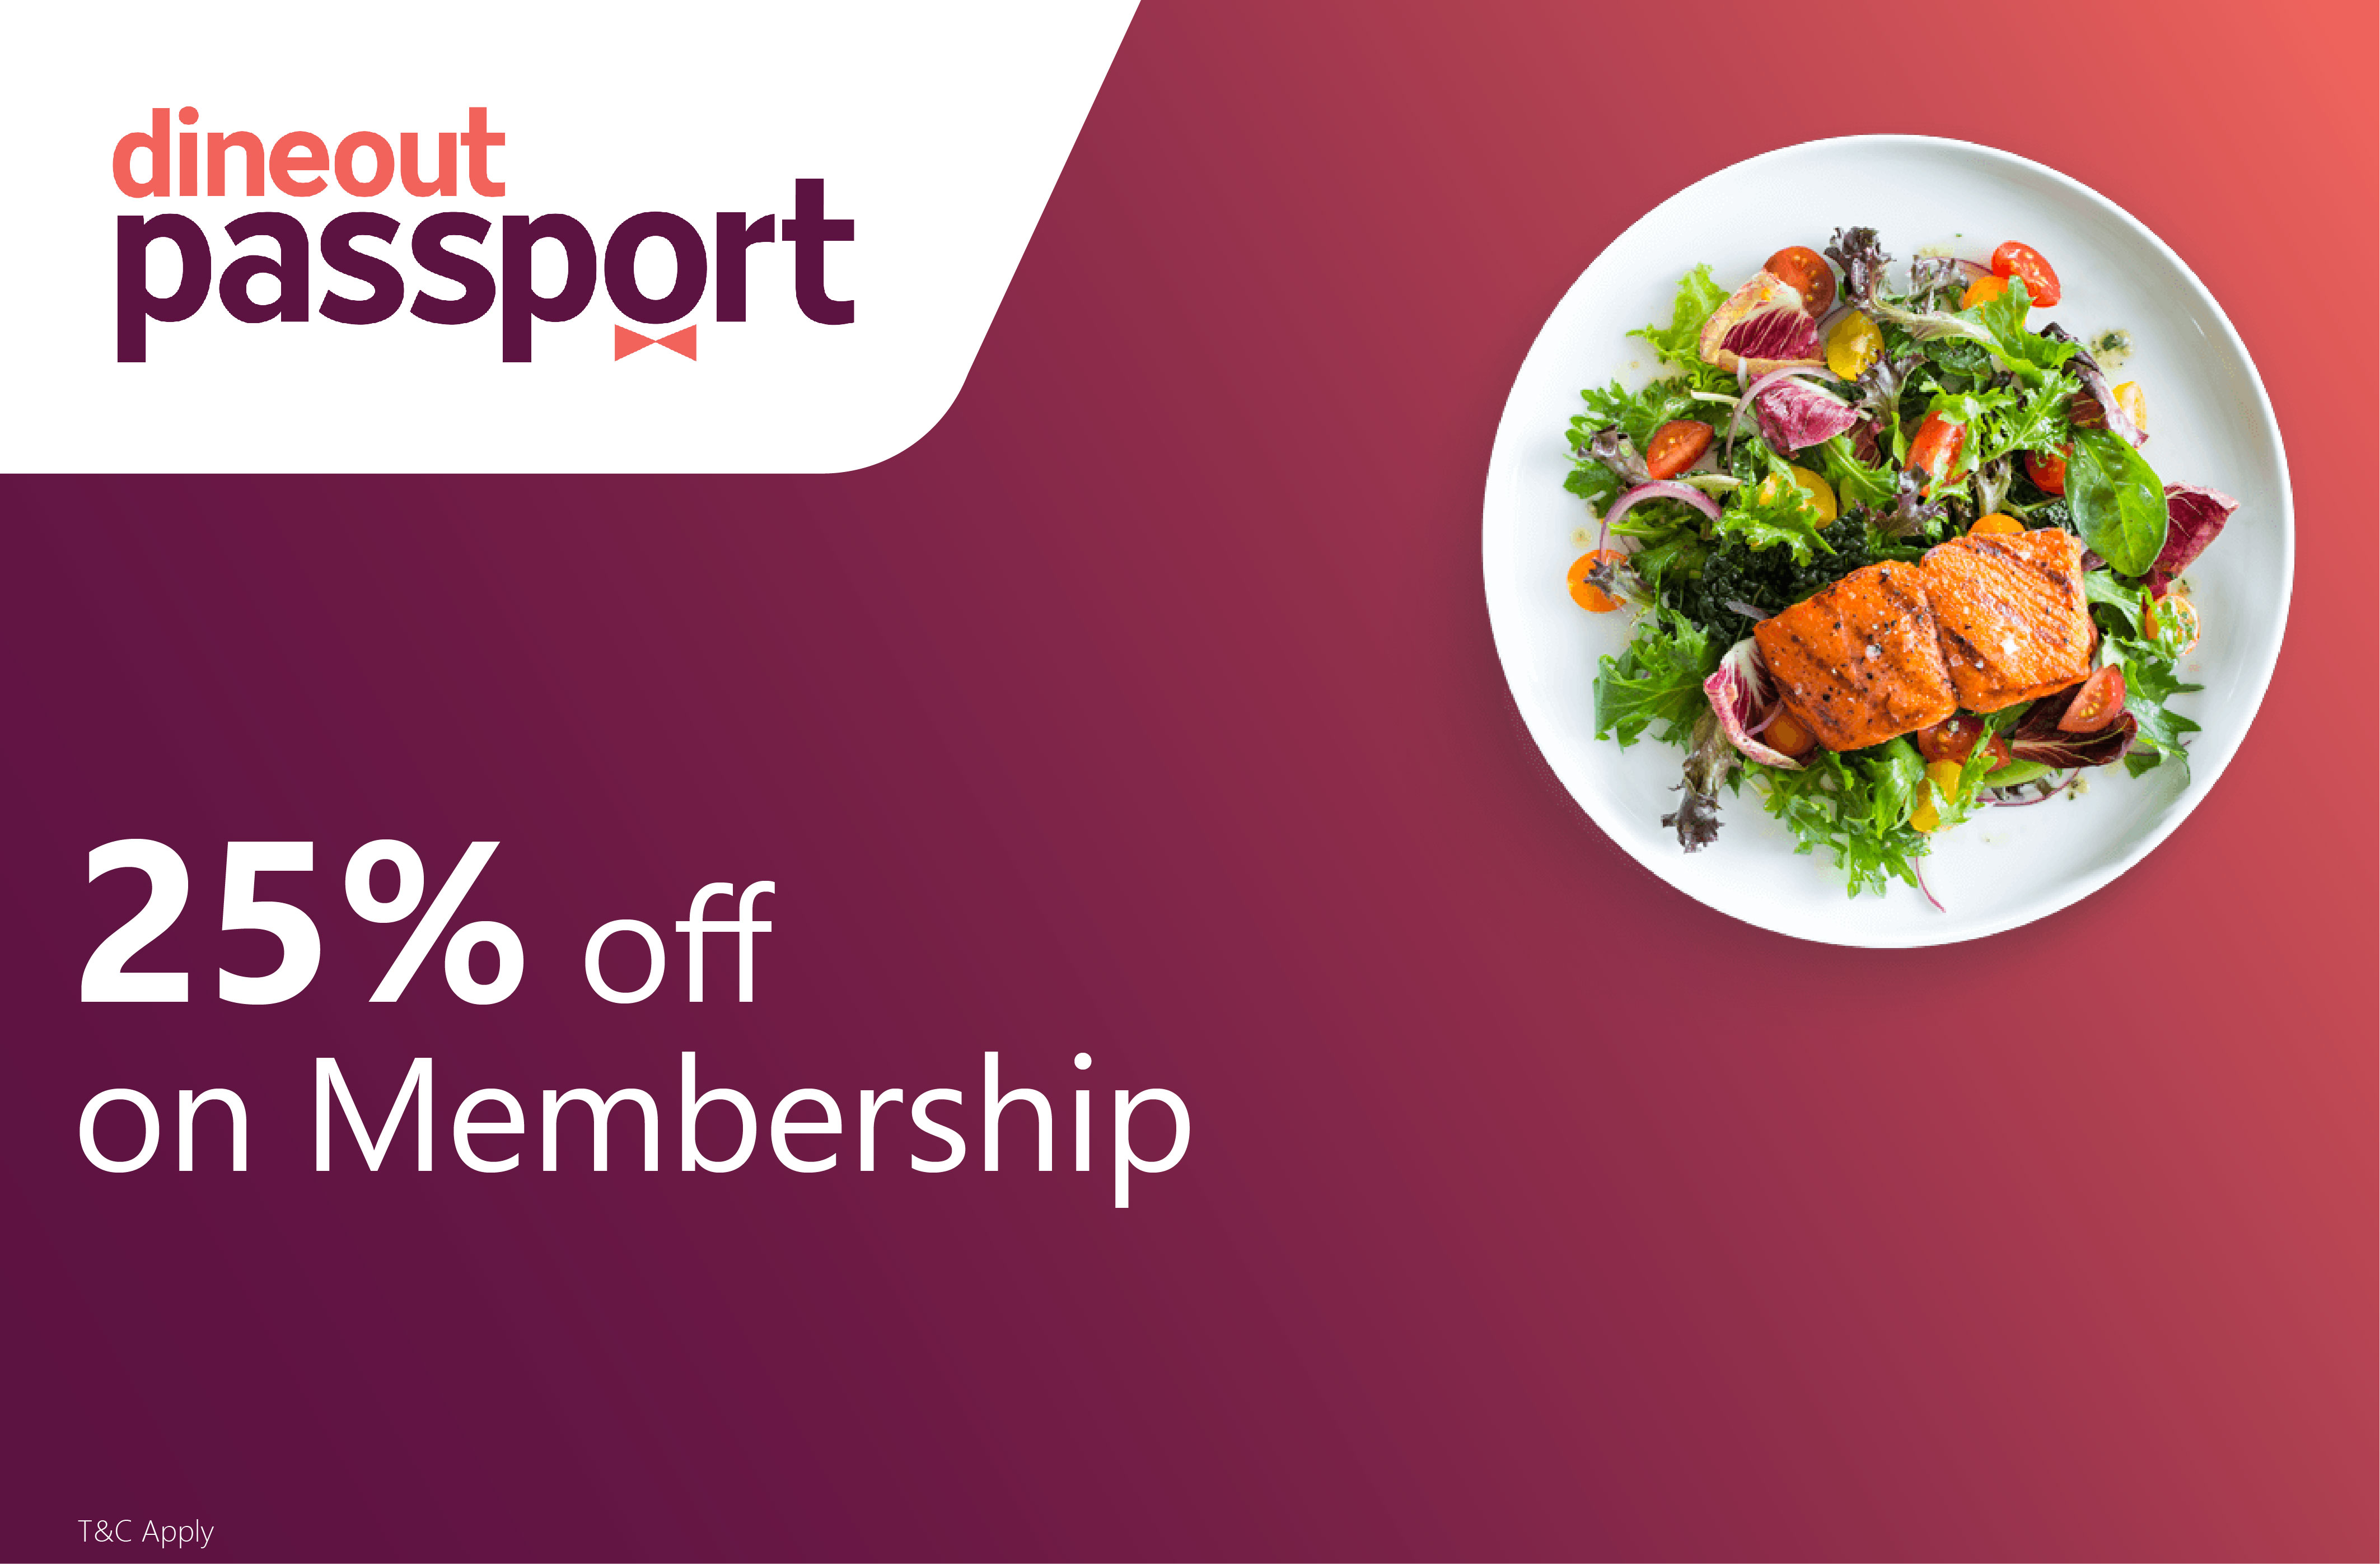 Get 25% off on Dineout Passport Membership